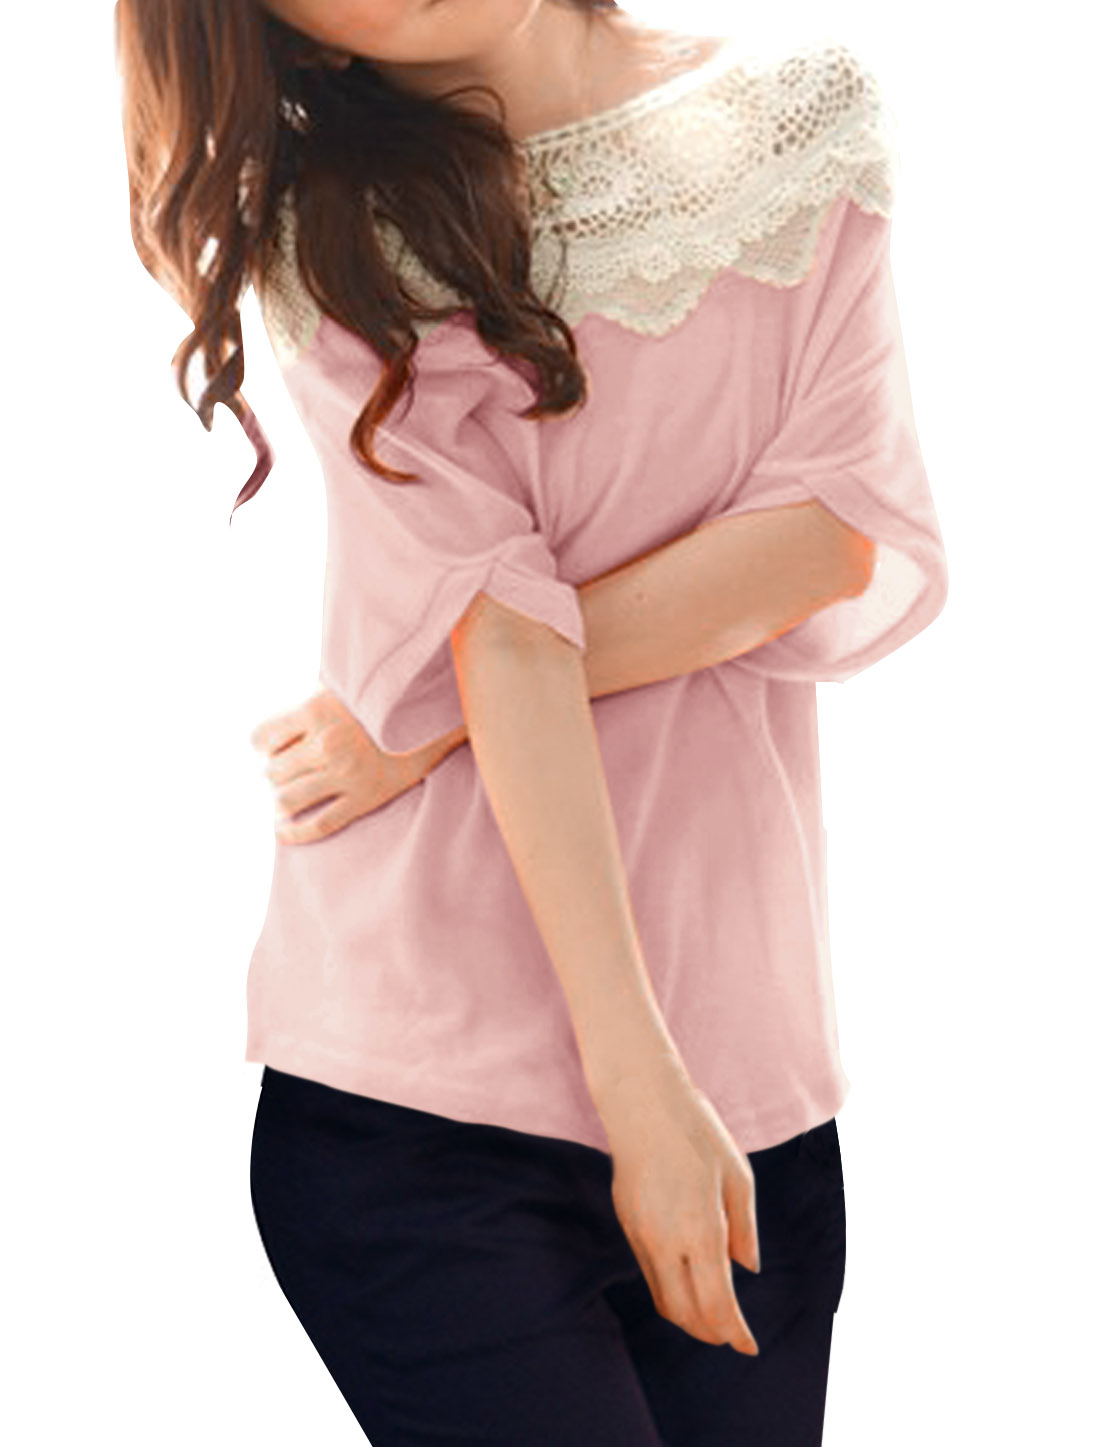 Women NEW Crochet Lace Splice Pink Color Pullover Tunic Top Shirt M